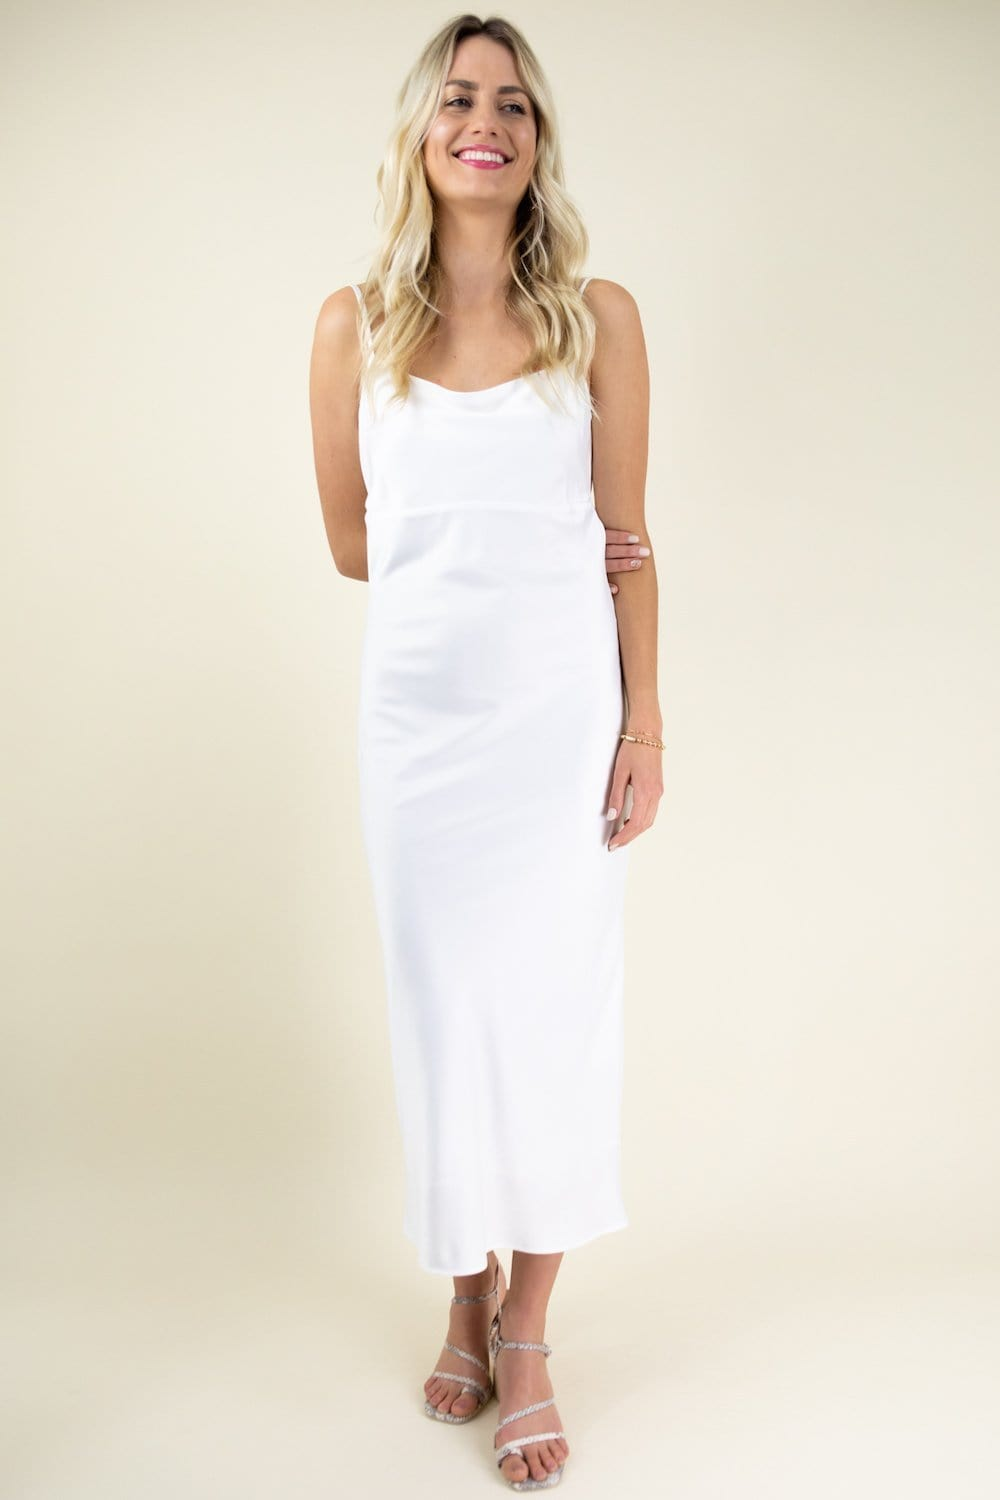 Flynn Skye Jackie Slip Dress | Wild Dove Boutique